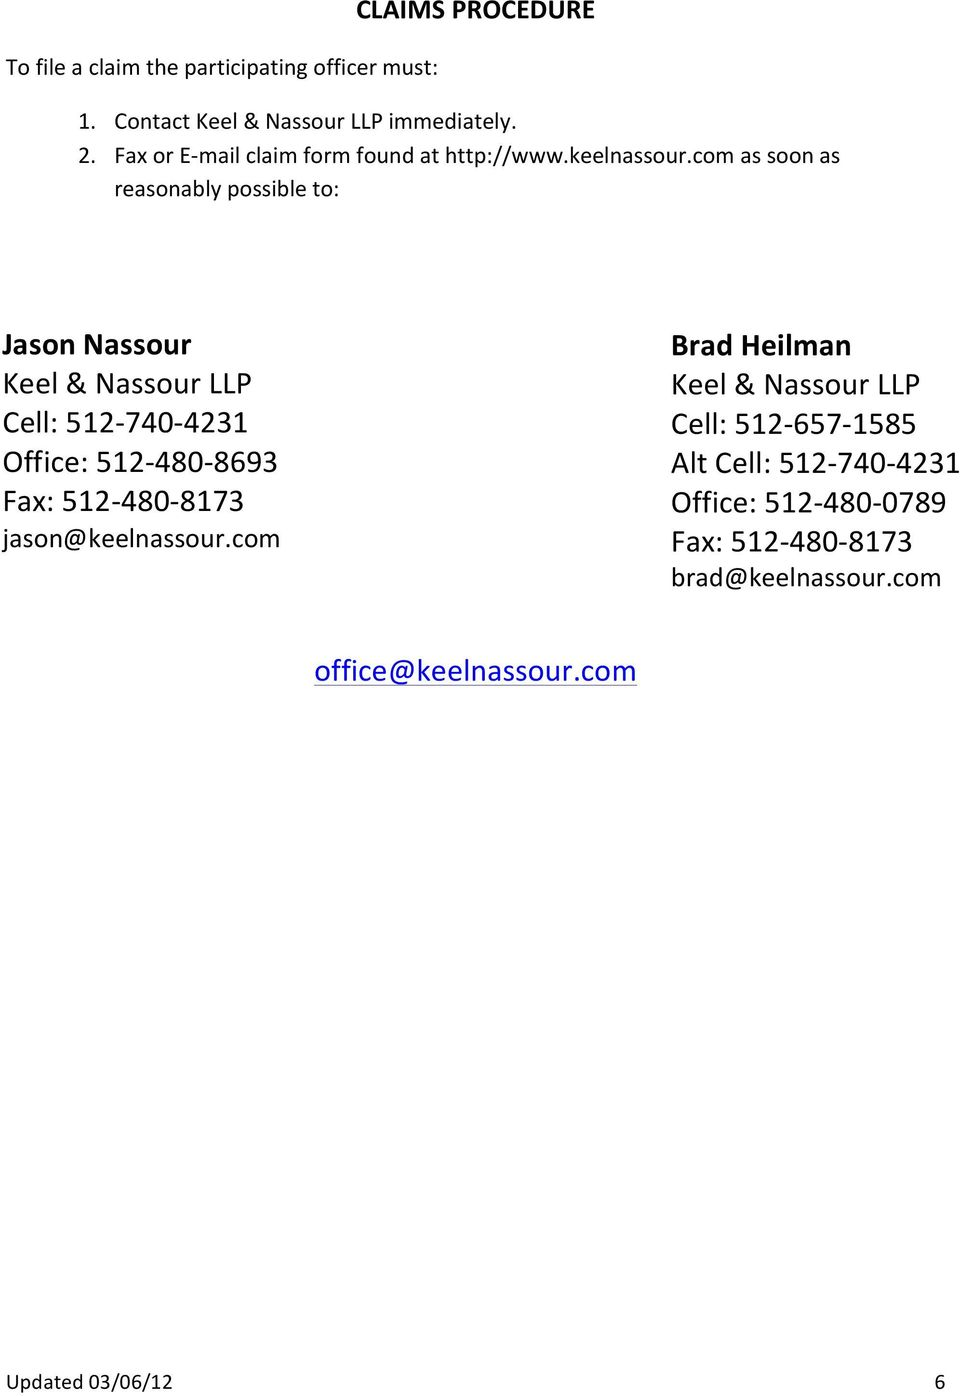 com as soon as reasonably possible to: Jason Nassour Keel & Nassour LLP Cell: 512-740- 4231 Office: 512-480- 8693 Fax: